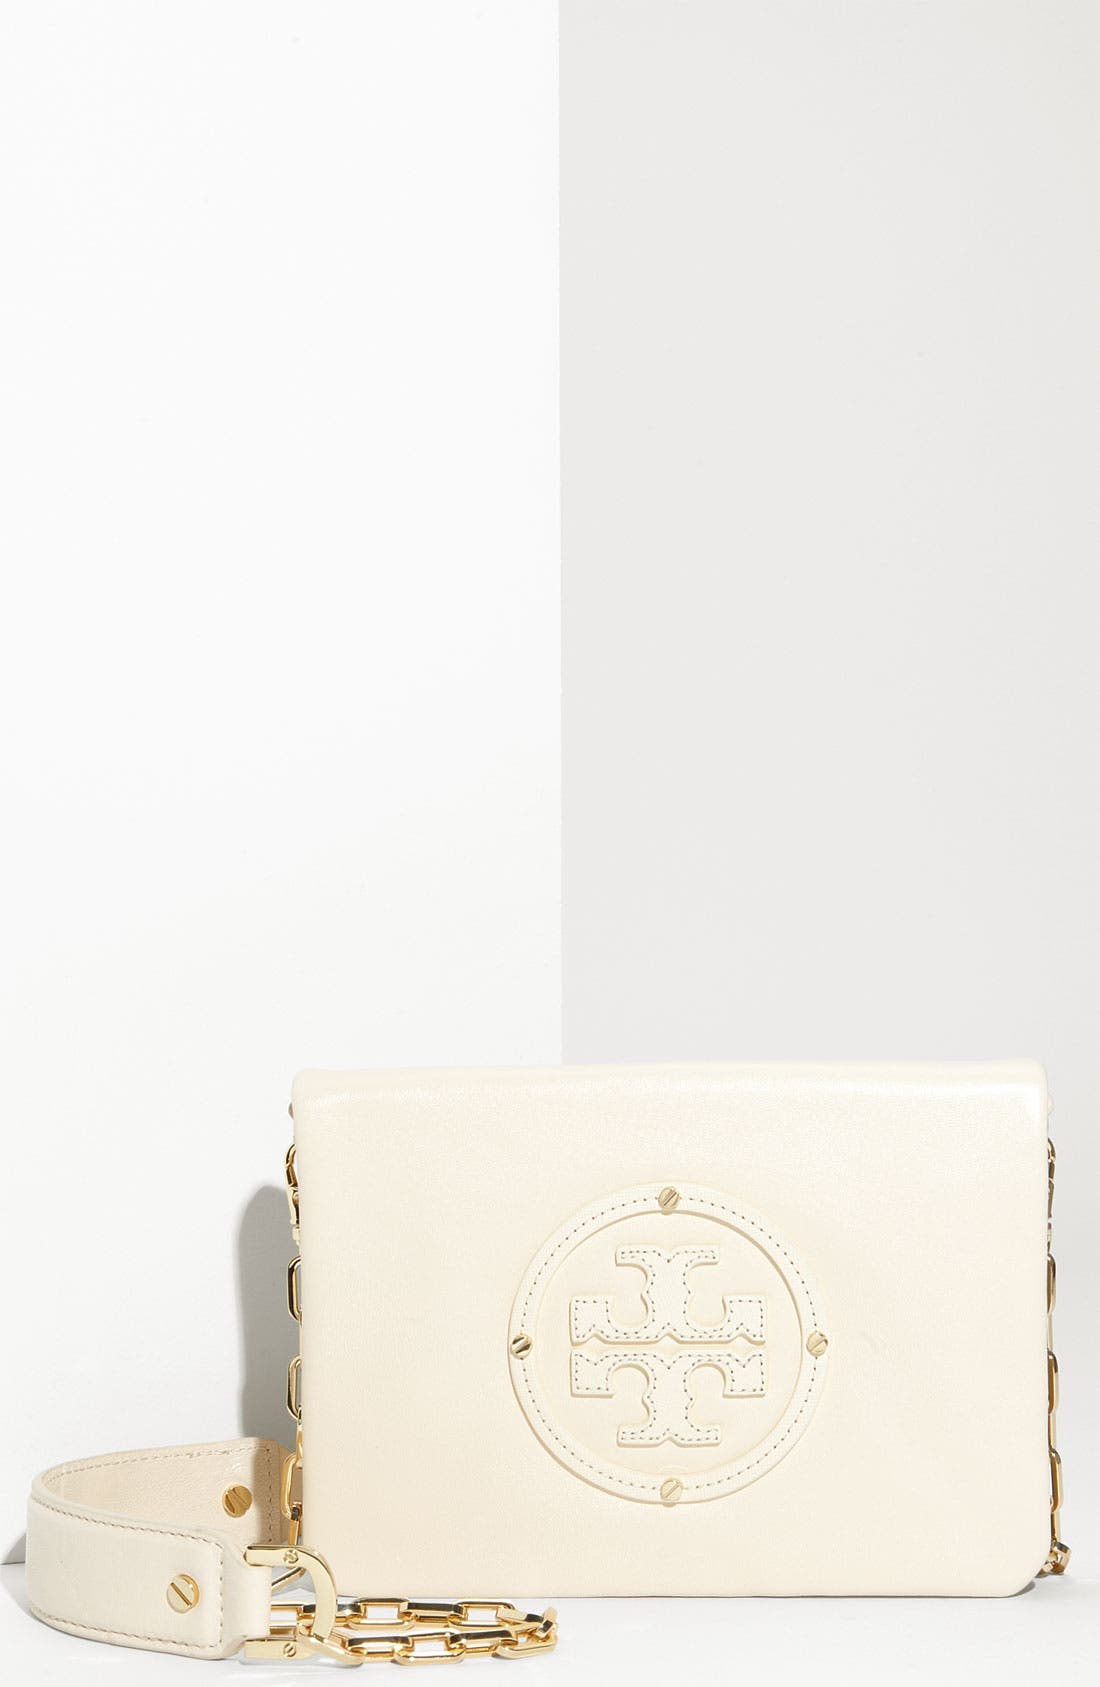 Main Image - Tory Burch 'Moonlight Stacked Logo - Reva' Leather Clutch